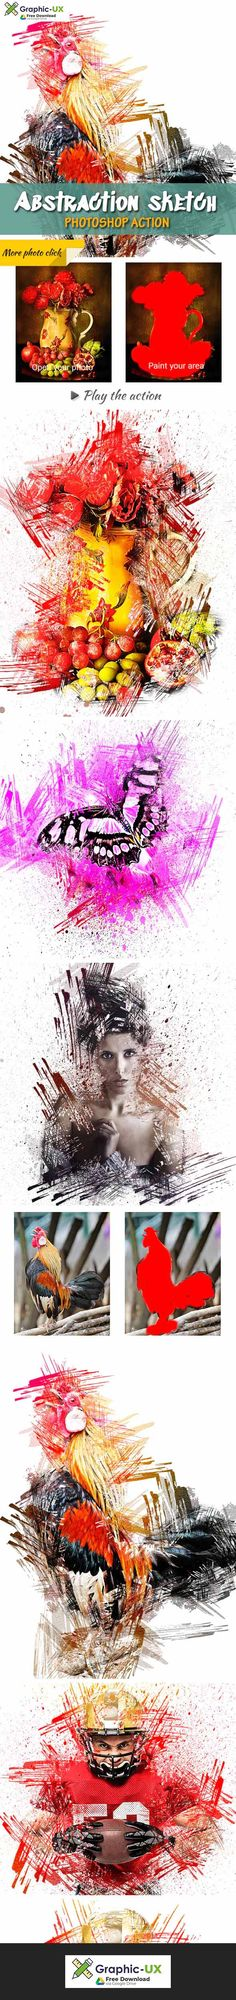 Neoart 3 Aquarelle Photoshop Action Free Graphicux Photoshop